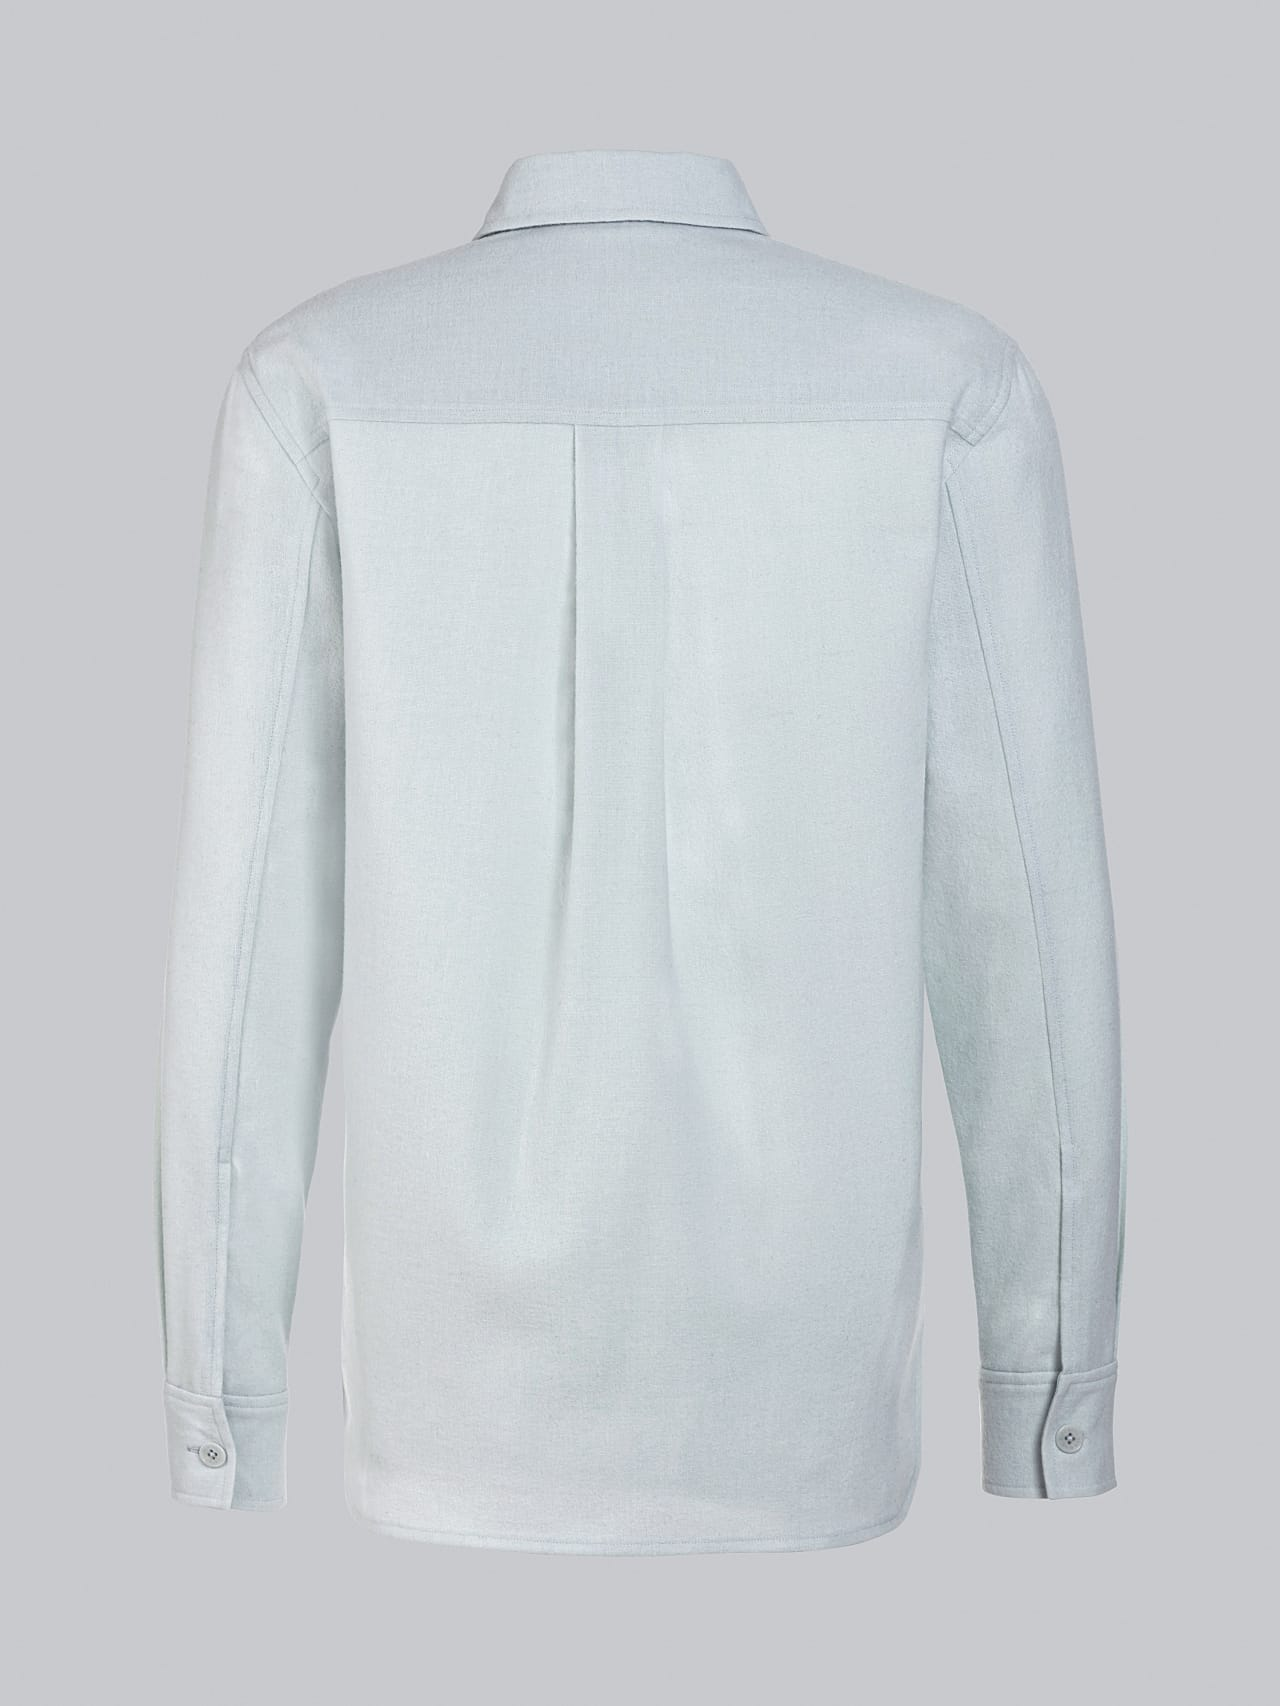 WOVER V1.Y5.02 Wool Over-Shirt Pale Blue  Left Alpha Tauri